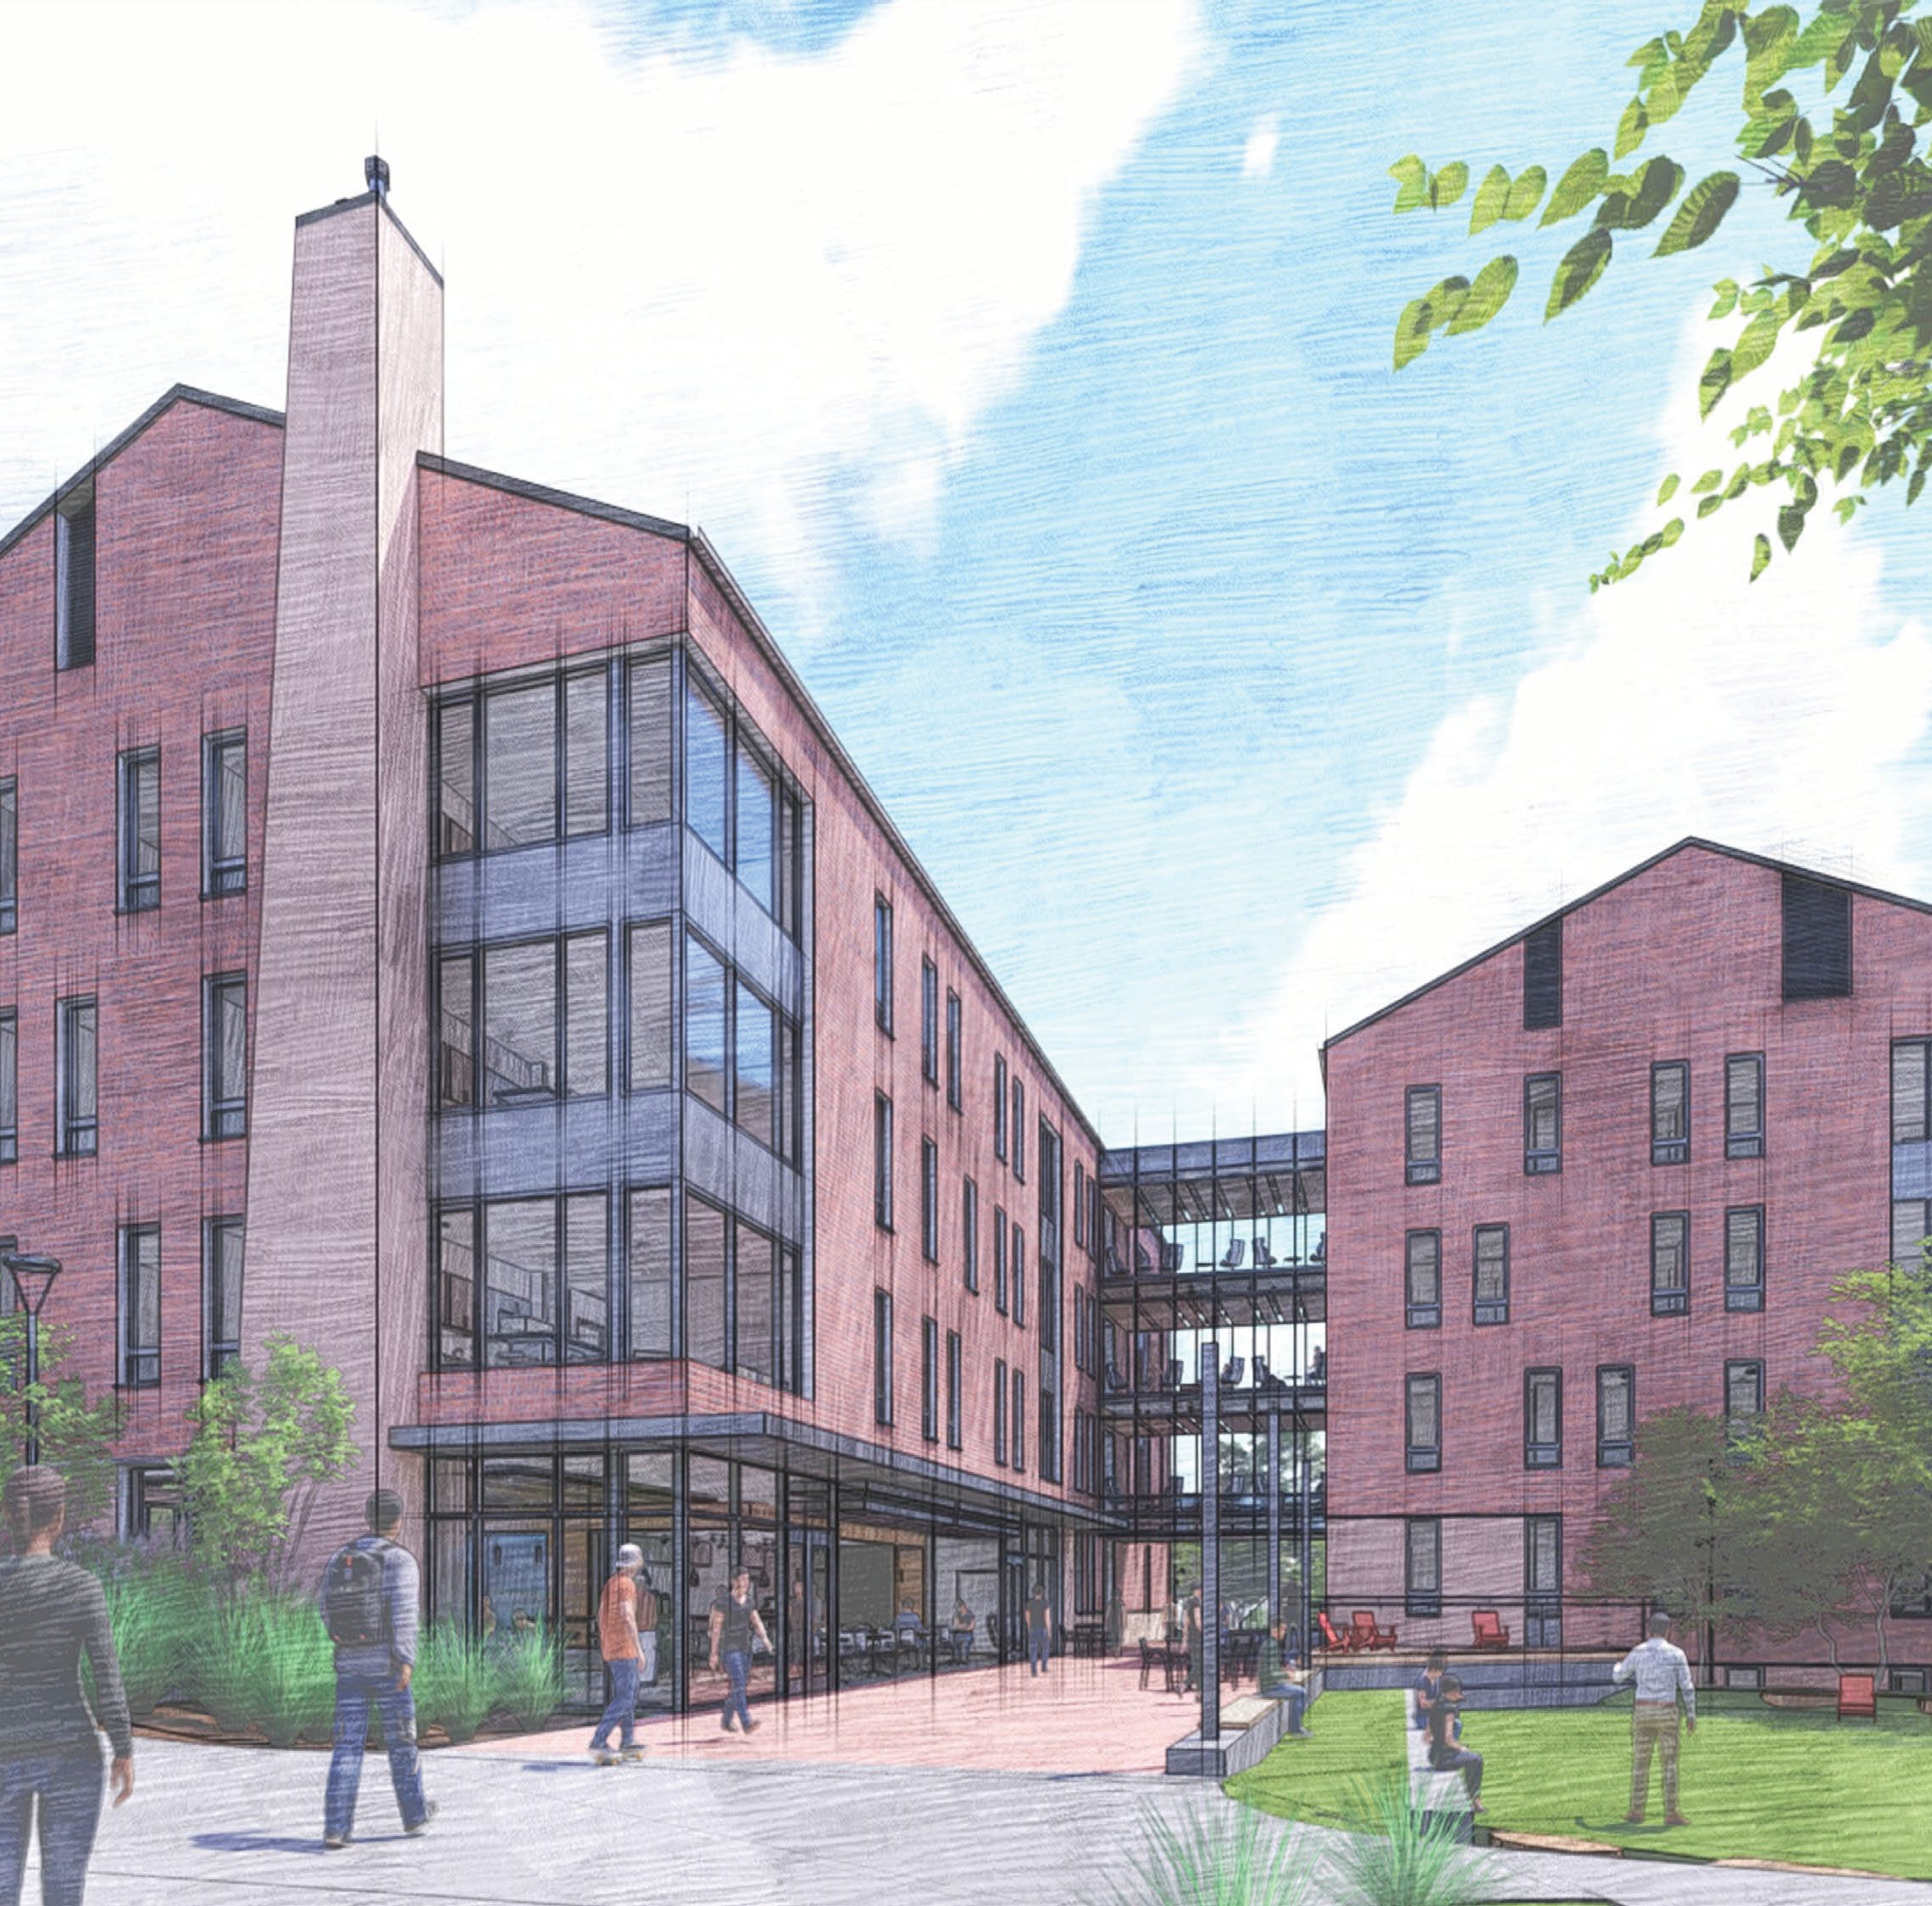 New senior housing, wellness center coming to Denison